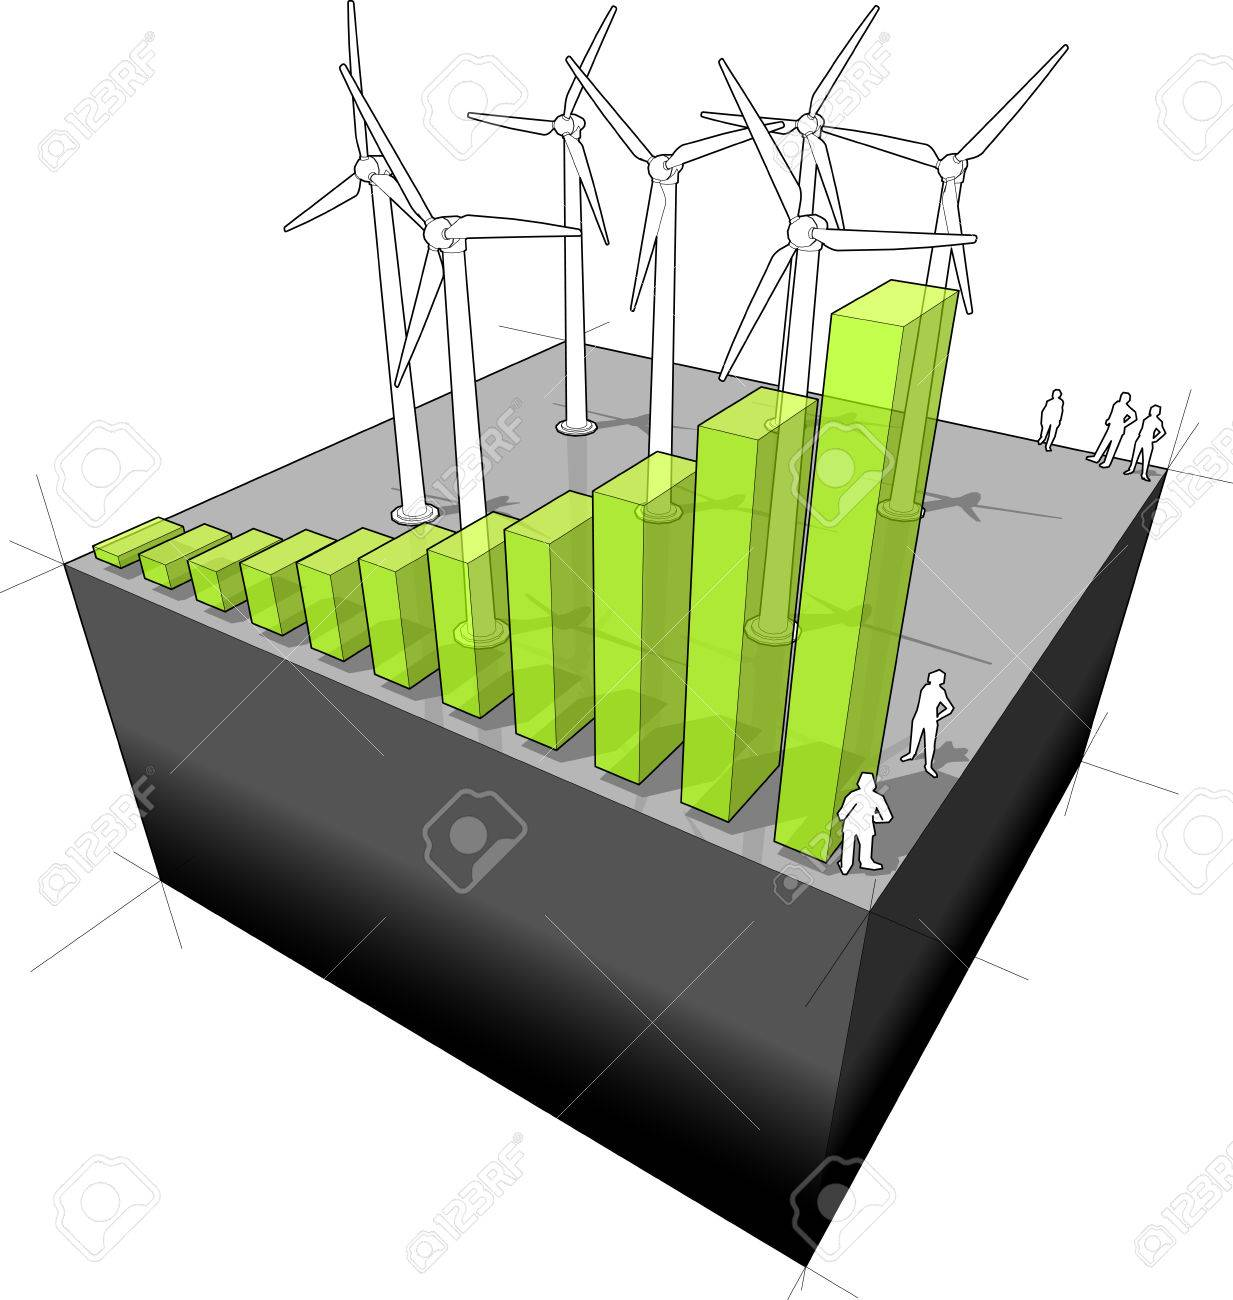 Diagram Of A Wind Turbine Farm With Rising Bar Diagram Meaning ...